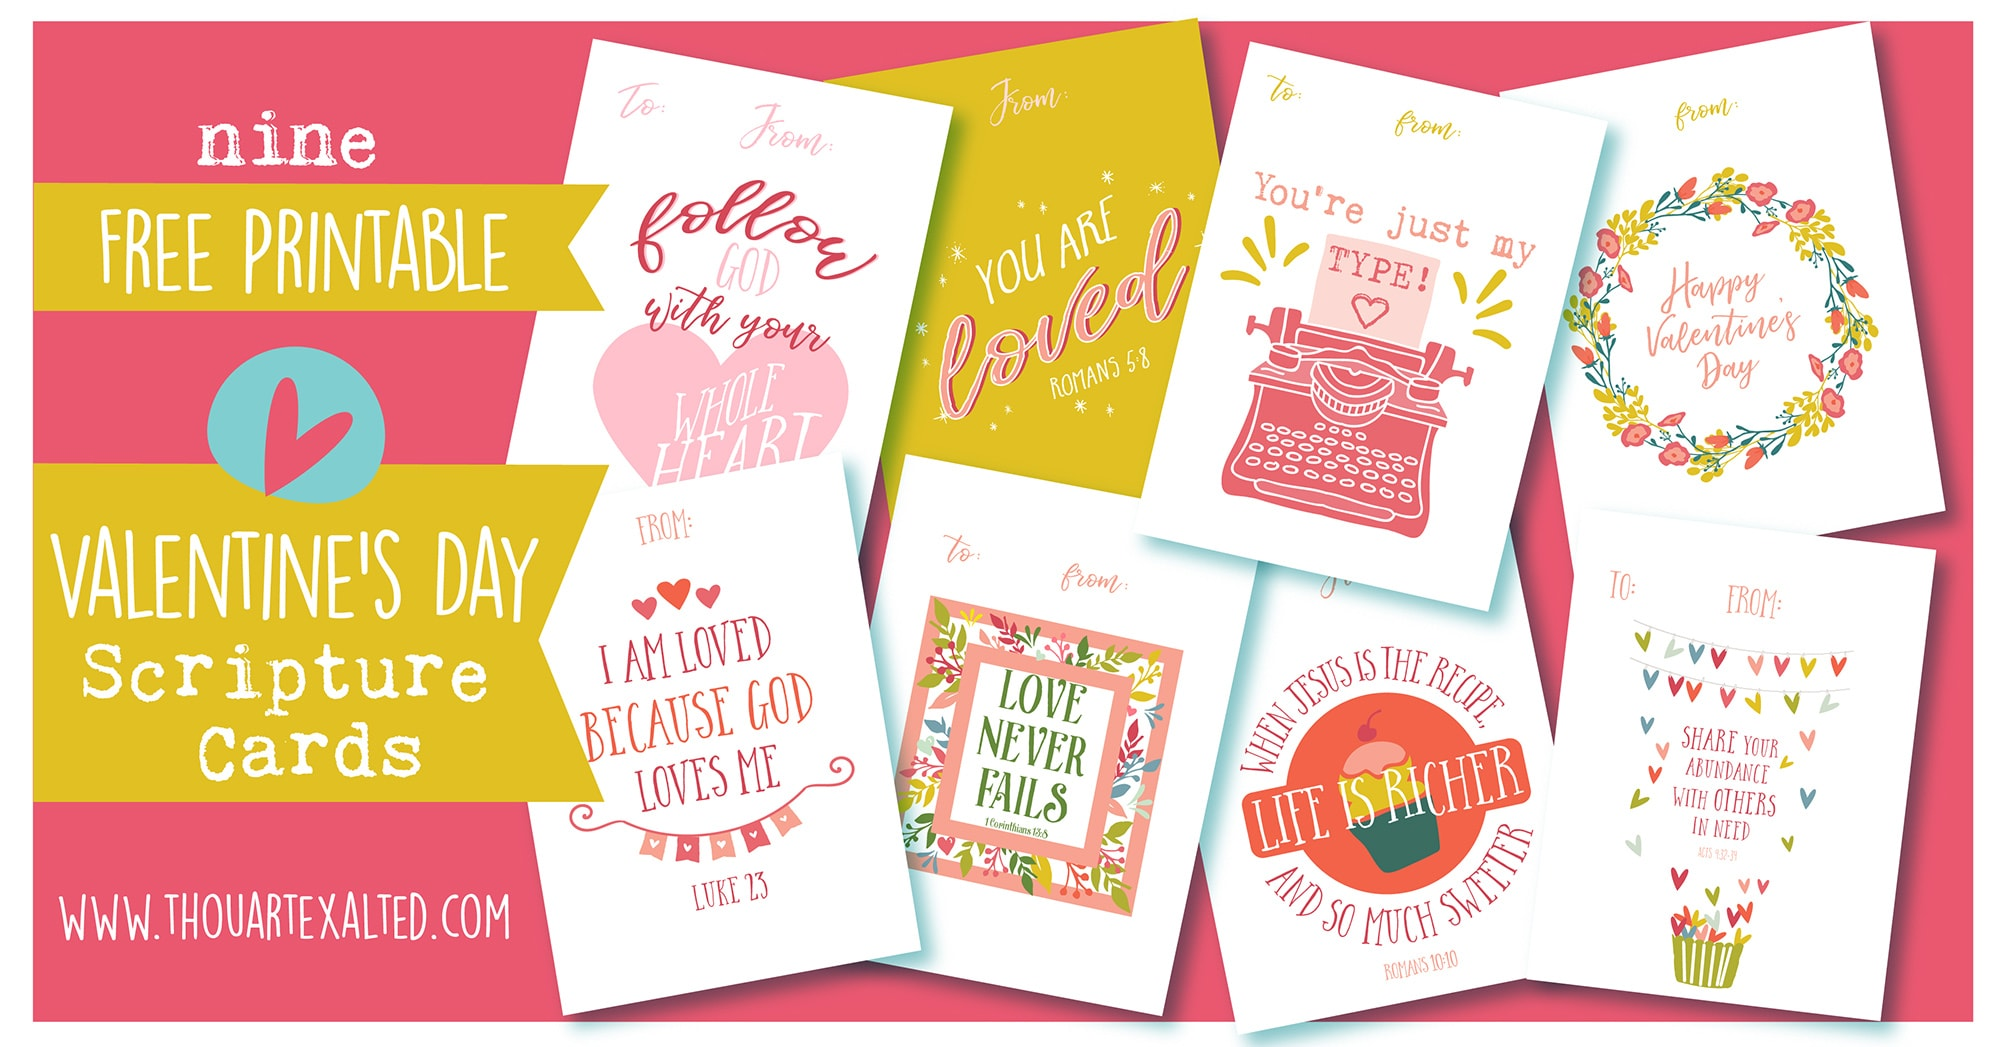 photo regarding Sweetest Day Cards Printable called No cost Scripture Valentines Playing cards ThouArtExalted